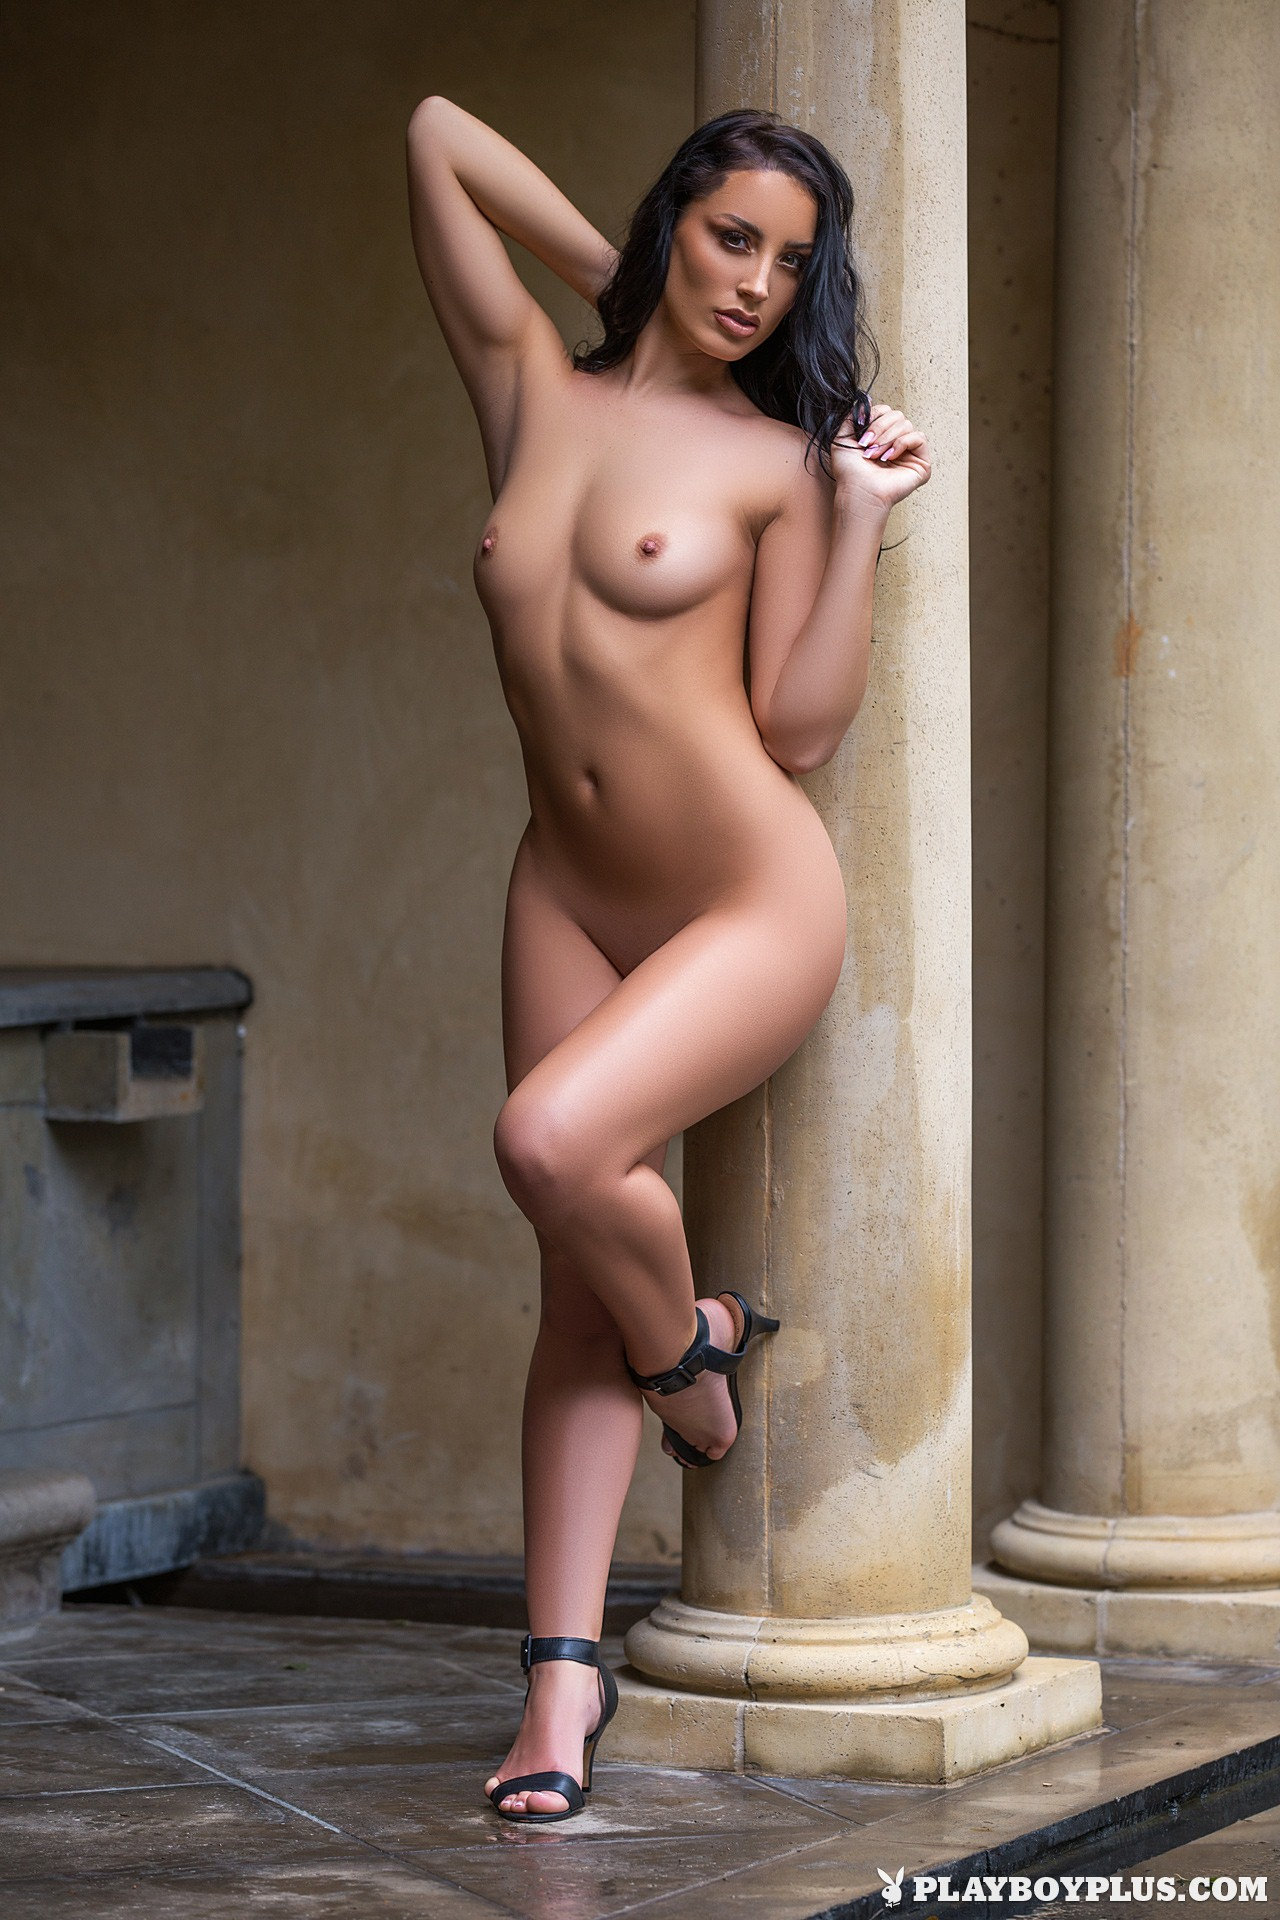 Nude at front door